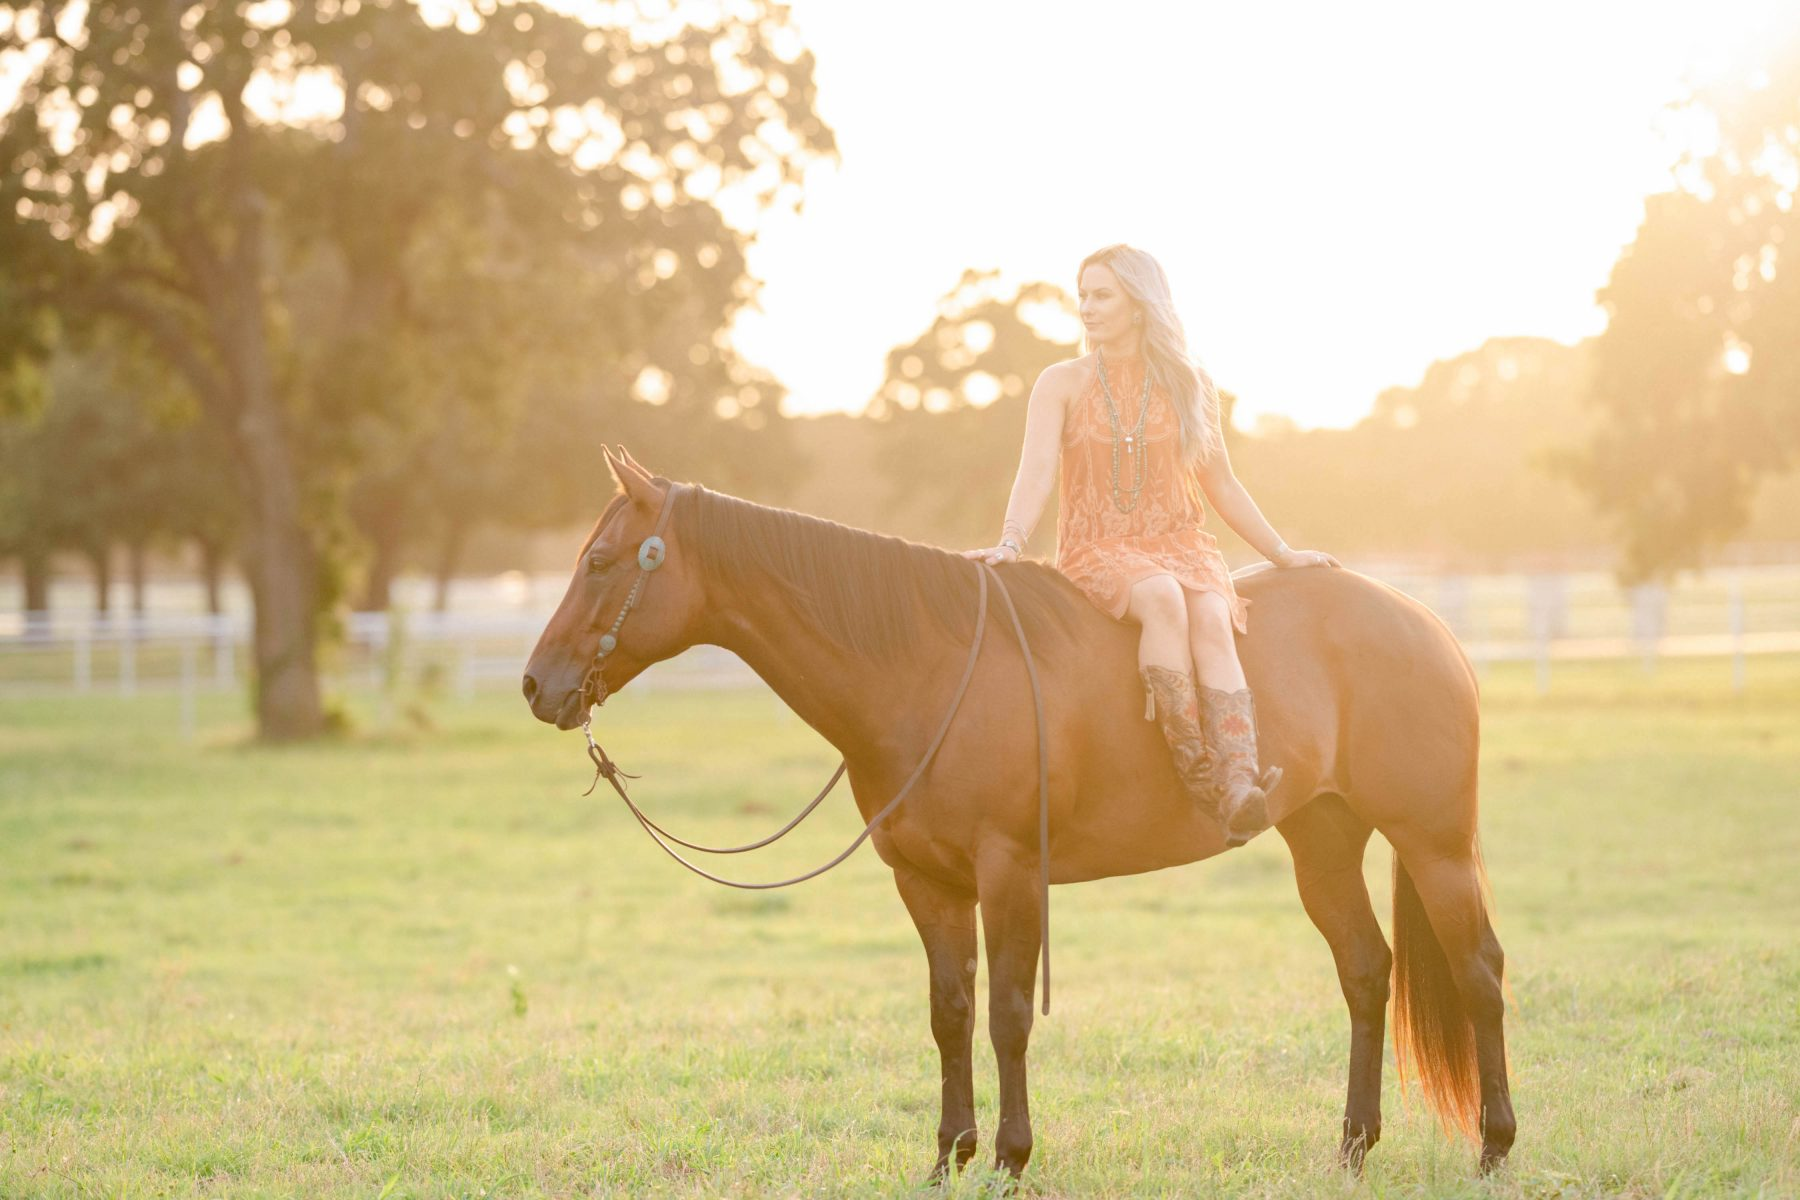 Equine Photography Online Courses